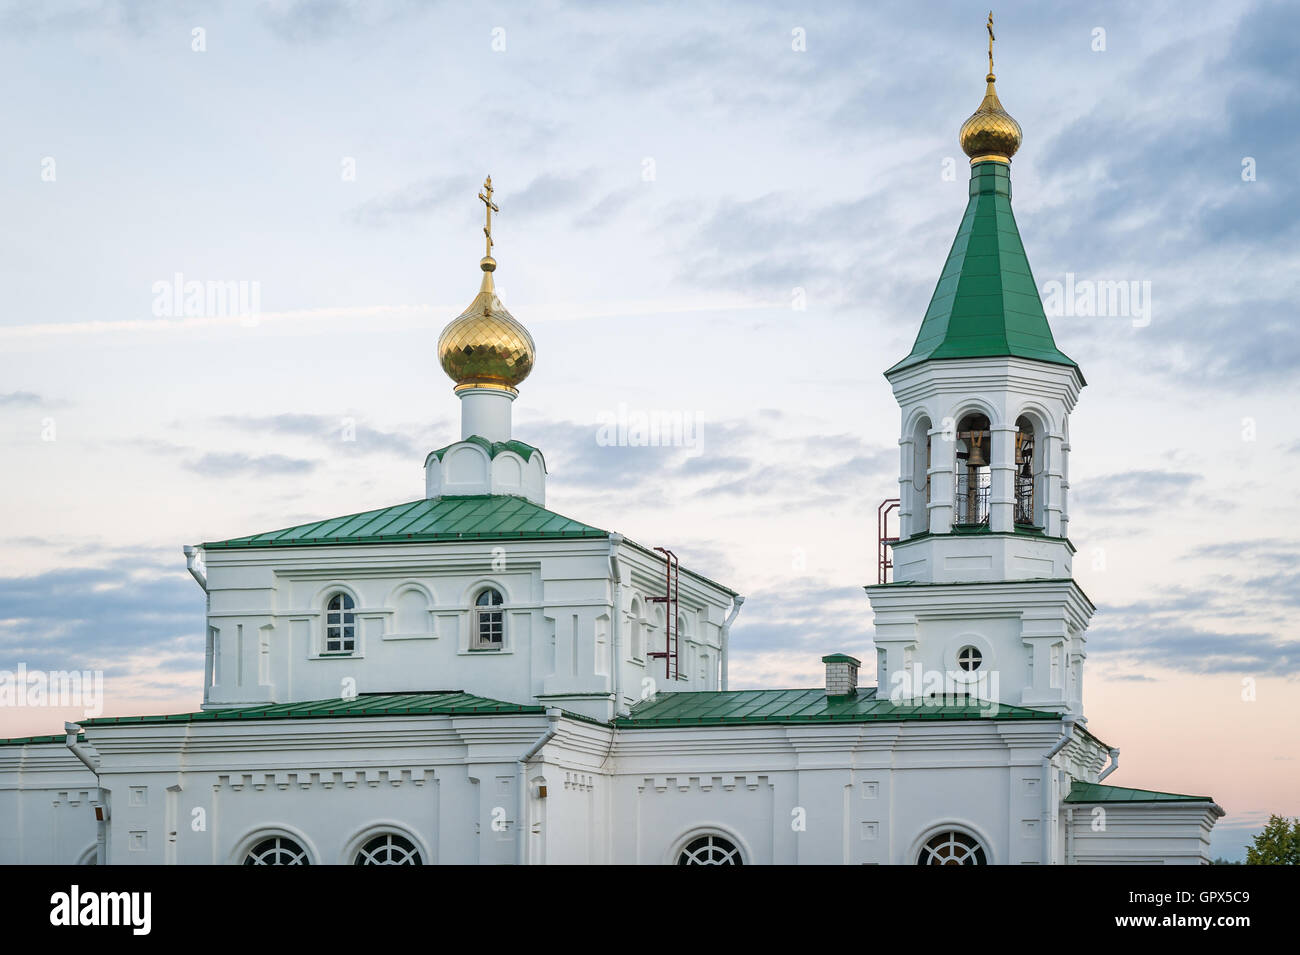 Close view on old orthodox church in Belarus - Stock Image